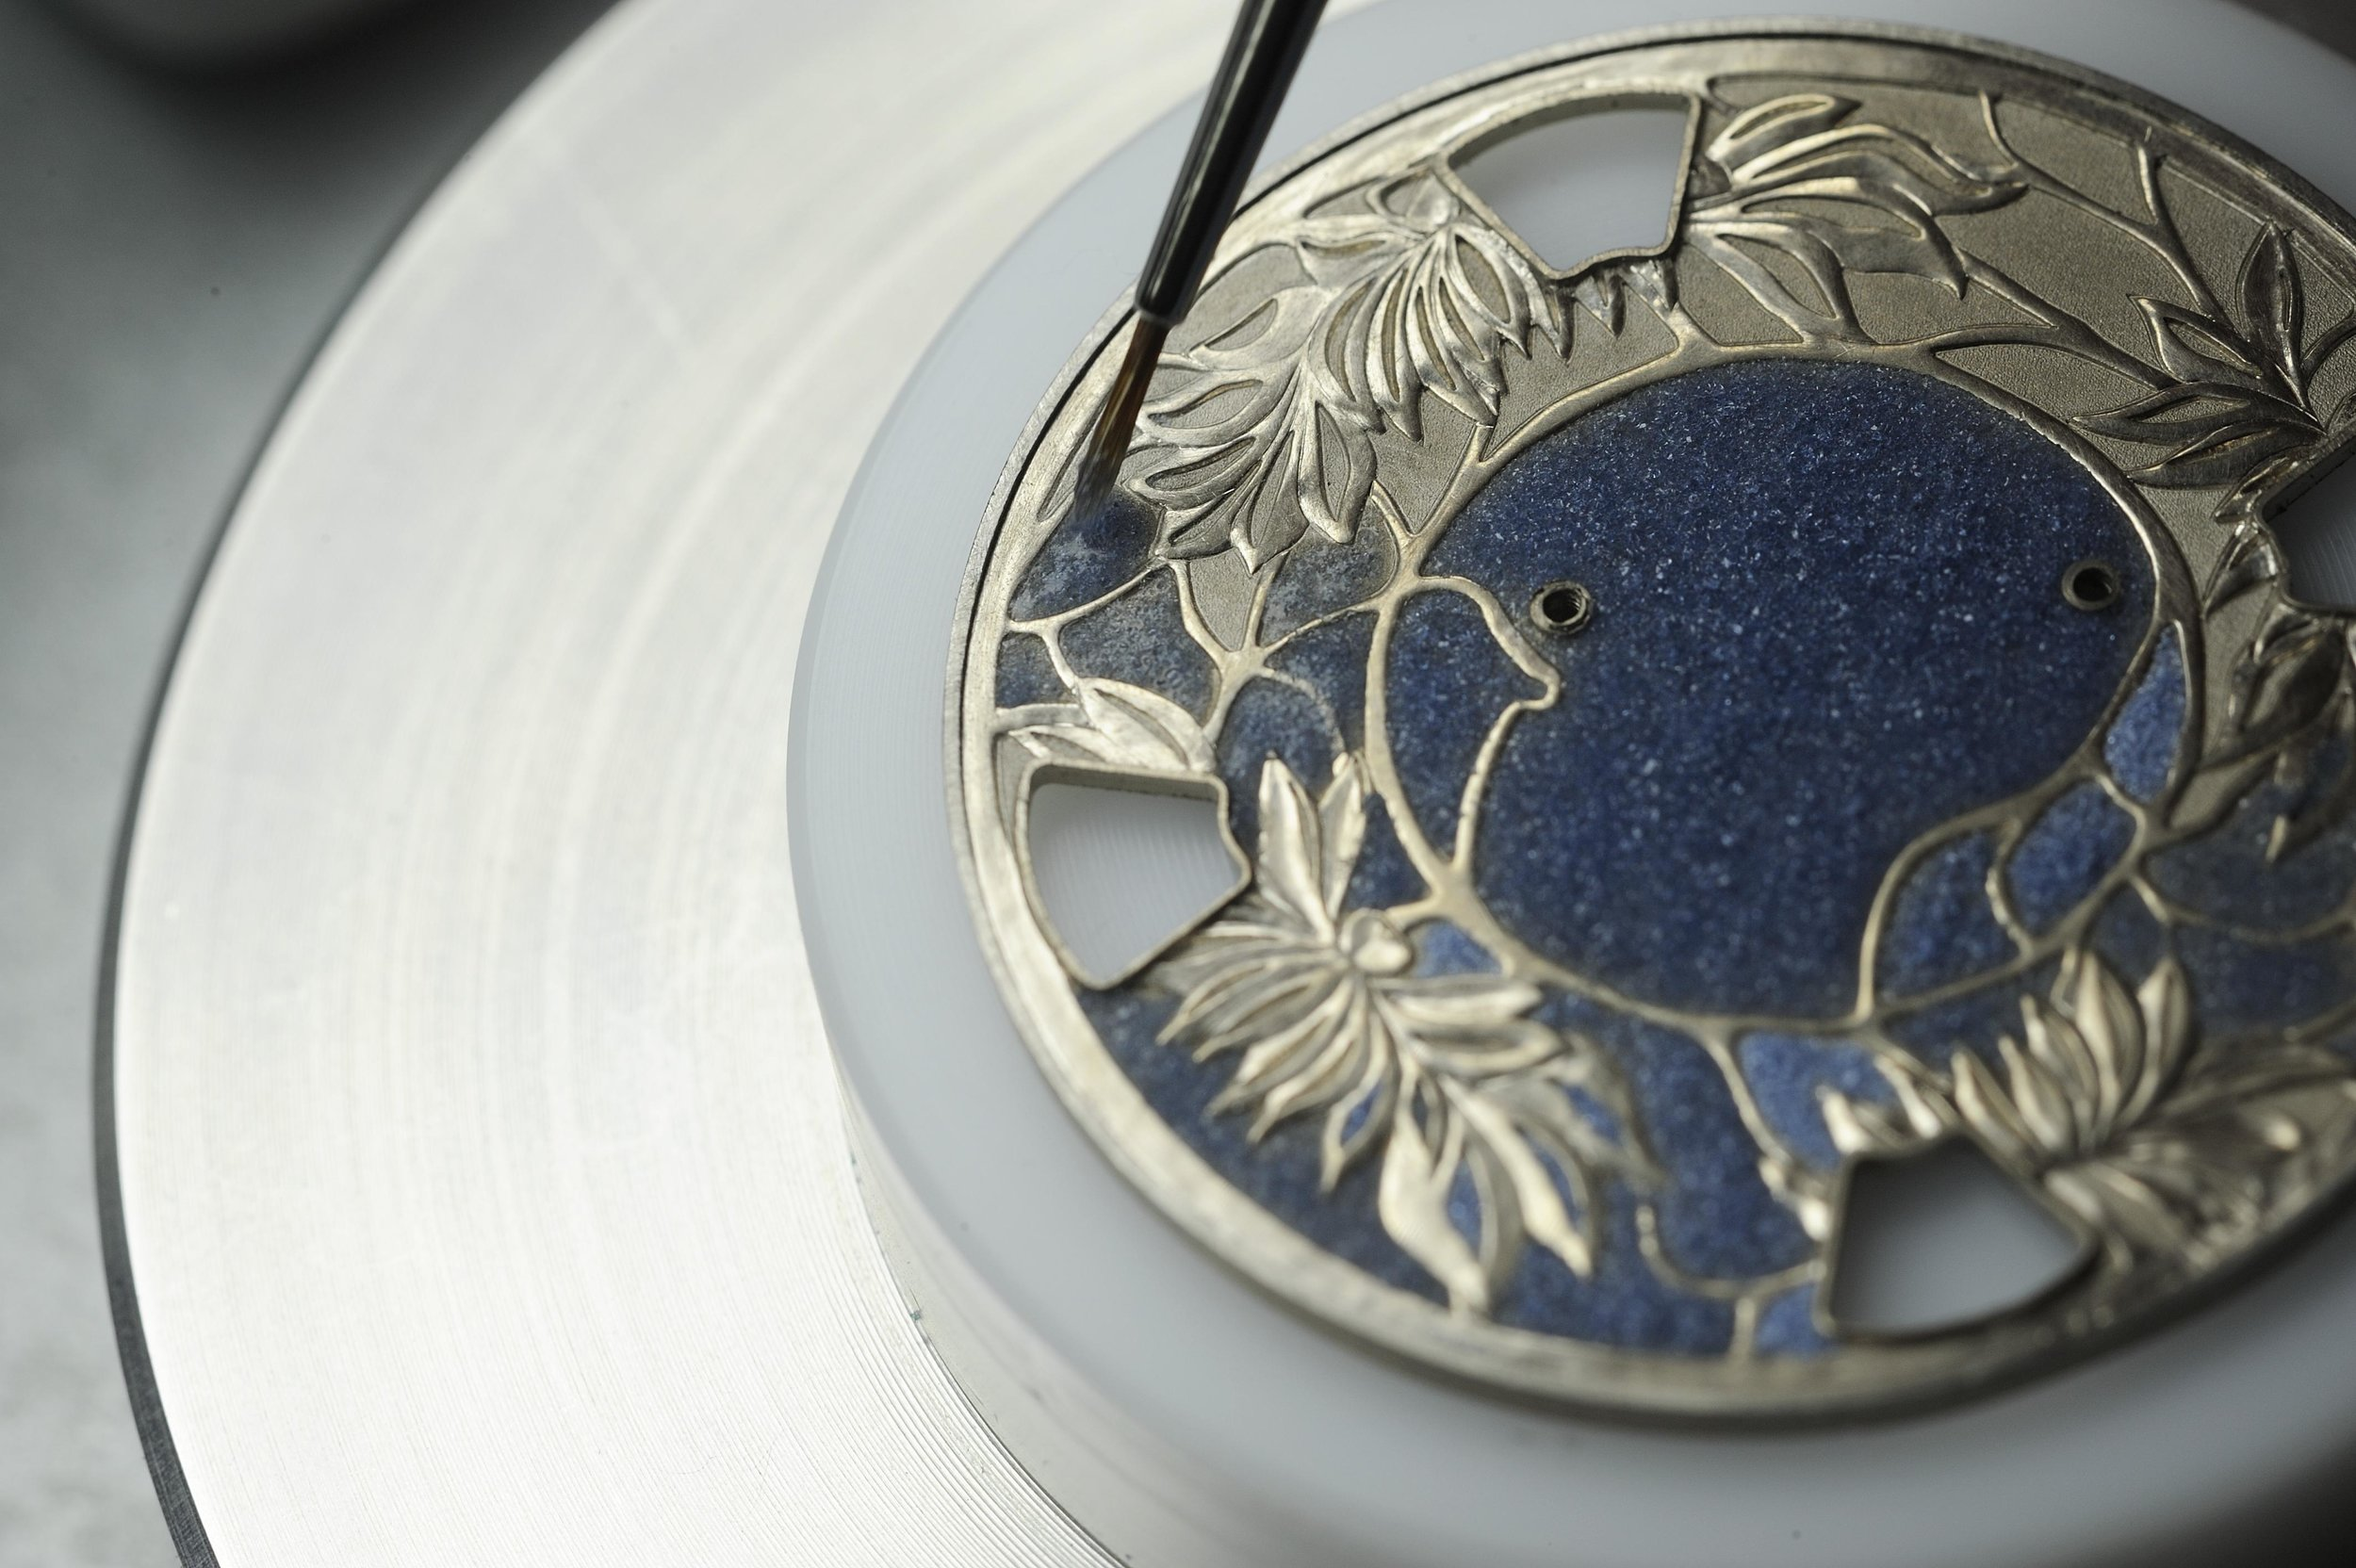 The dial of a Vacheron Constantin dial with Champleve enamel. Photo courtesy of Vacheron Constantin.